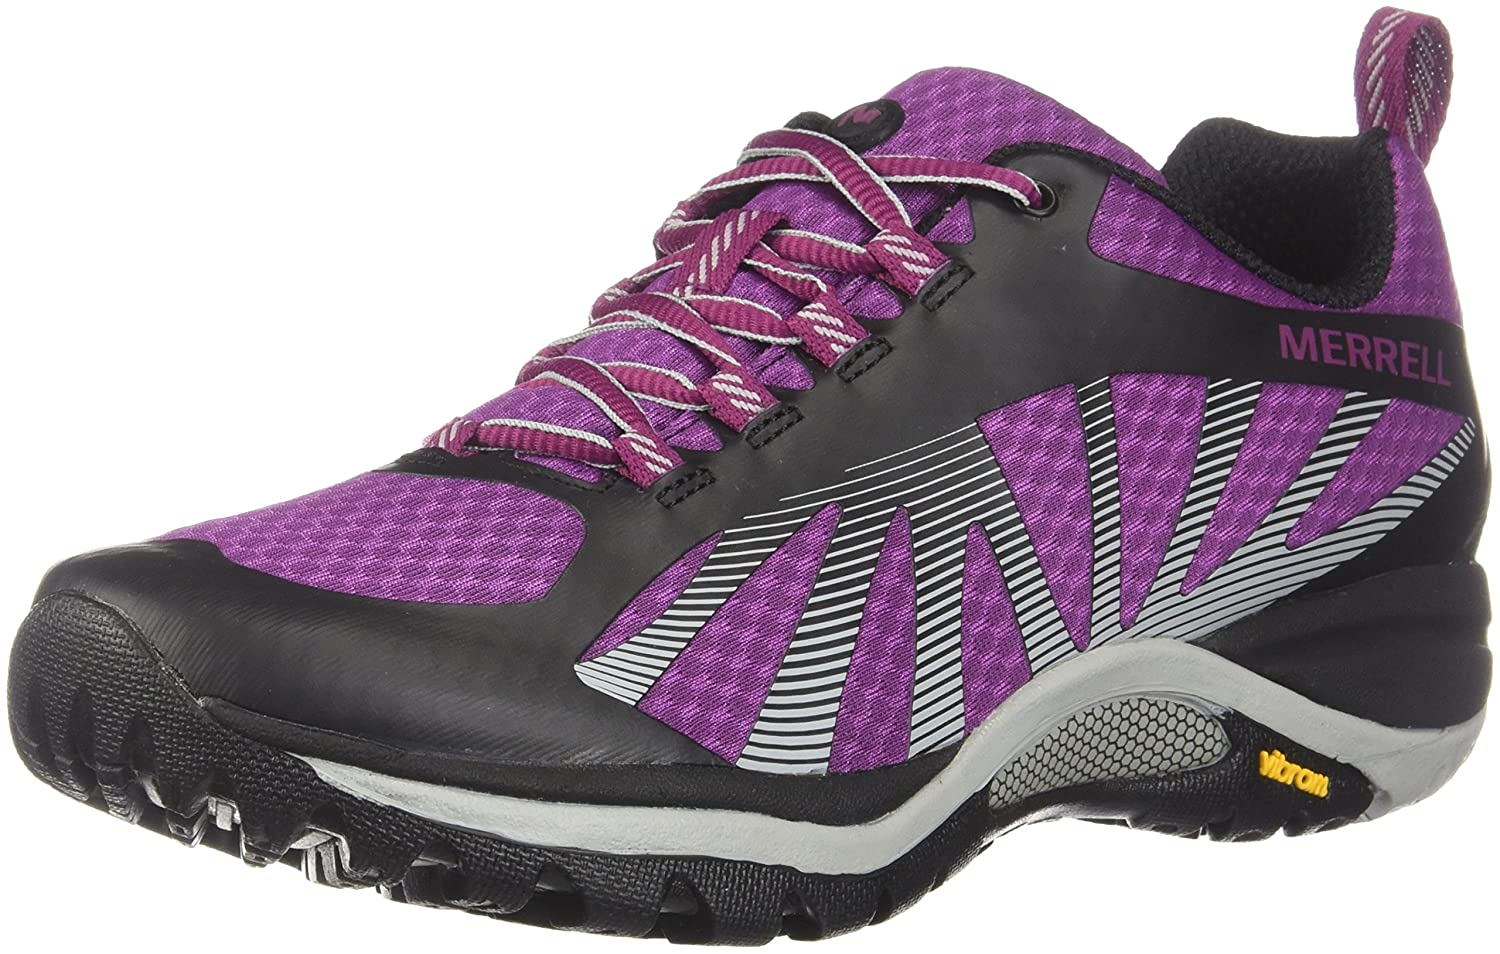 Merrell Women's Siren Edge Hiker B07574HD7Y 9 B(M) US|Amaranth